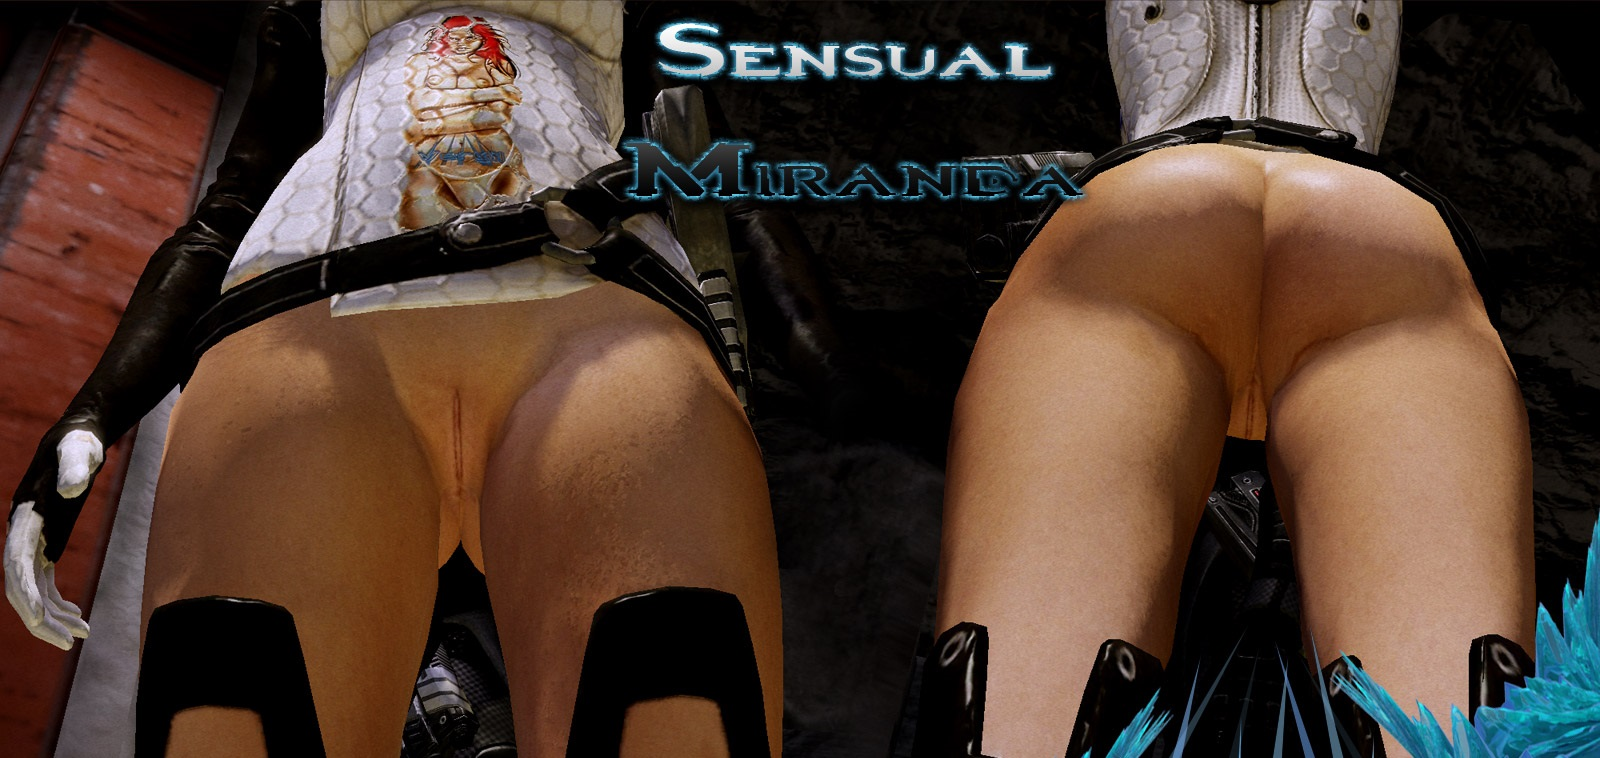 Mass effect 2 miranda nude mods nude comic